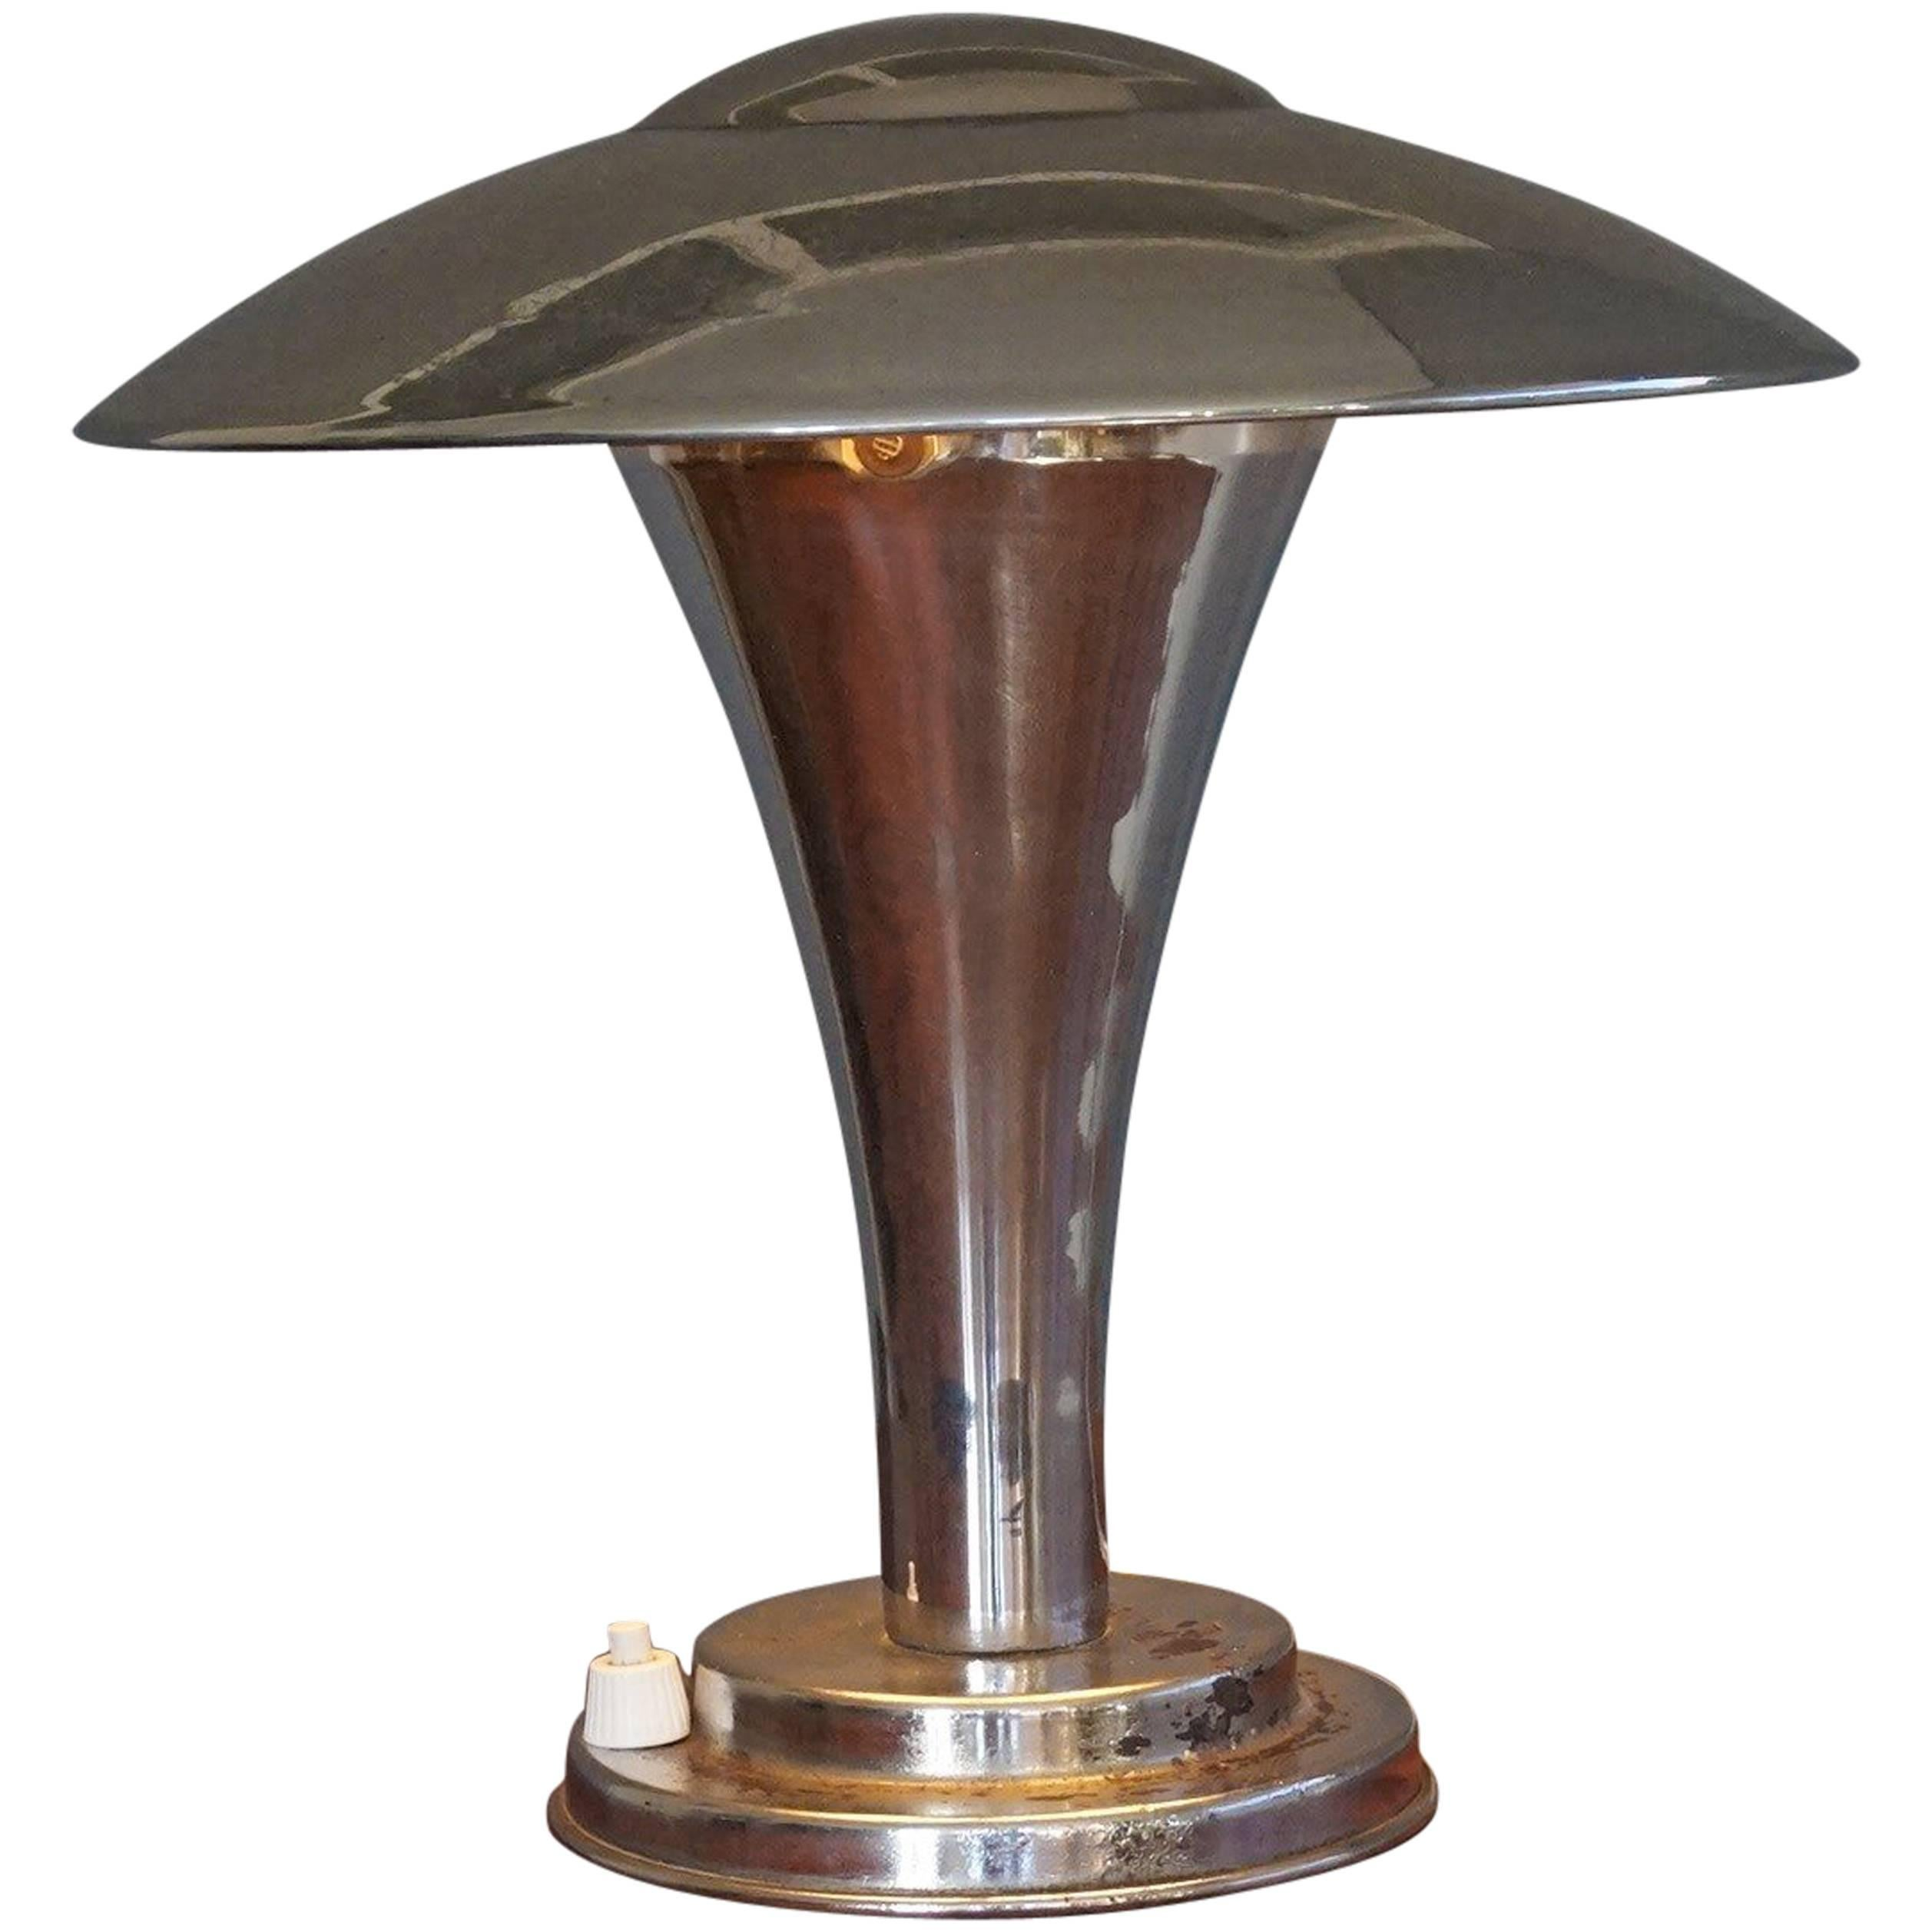 Rare Early 1900s Chrome Art Deco Table or Desk Lamp with Adjustable Shade